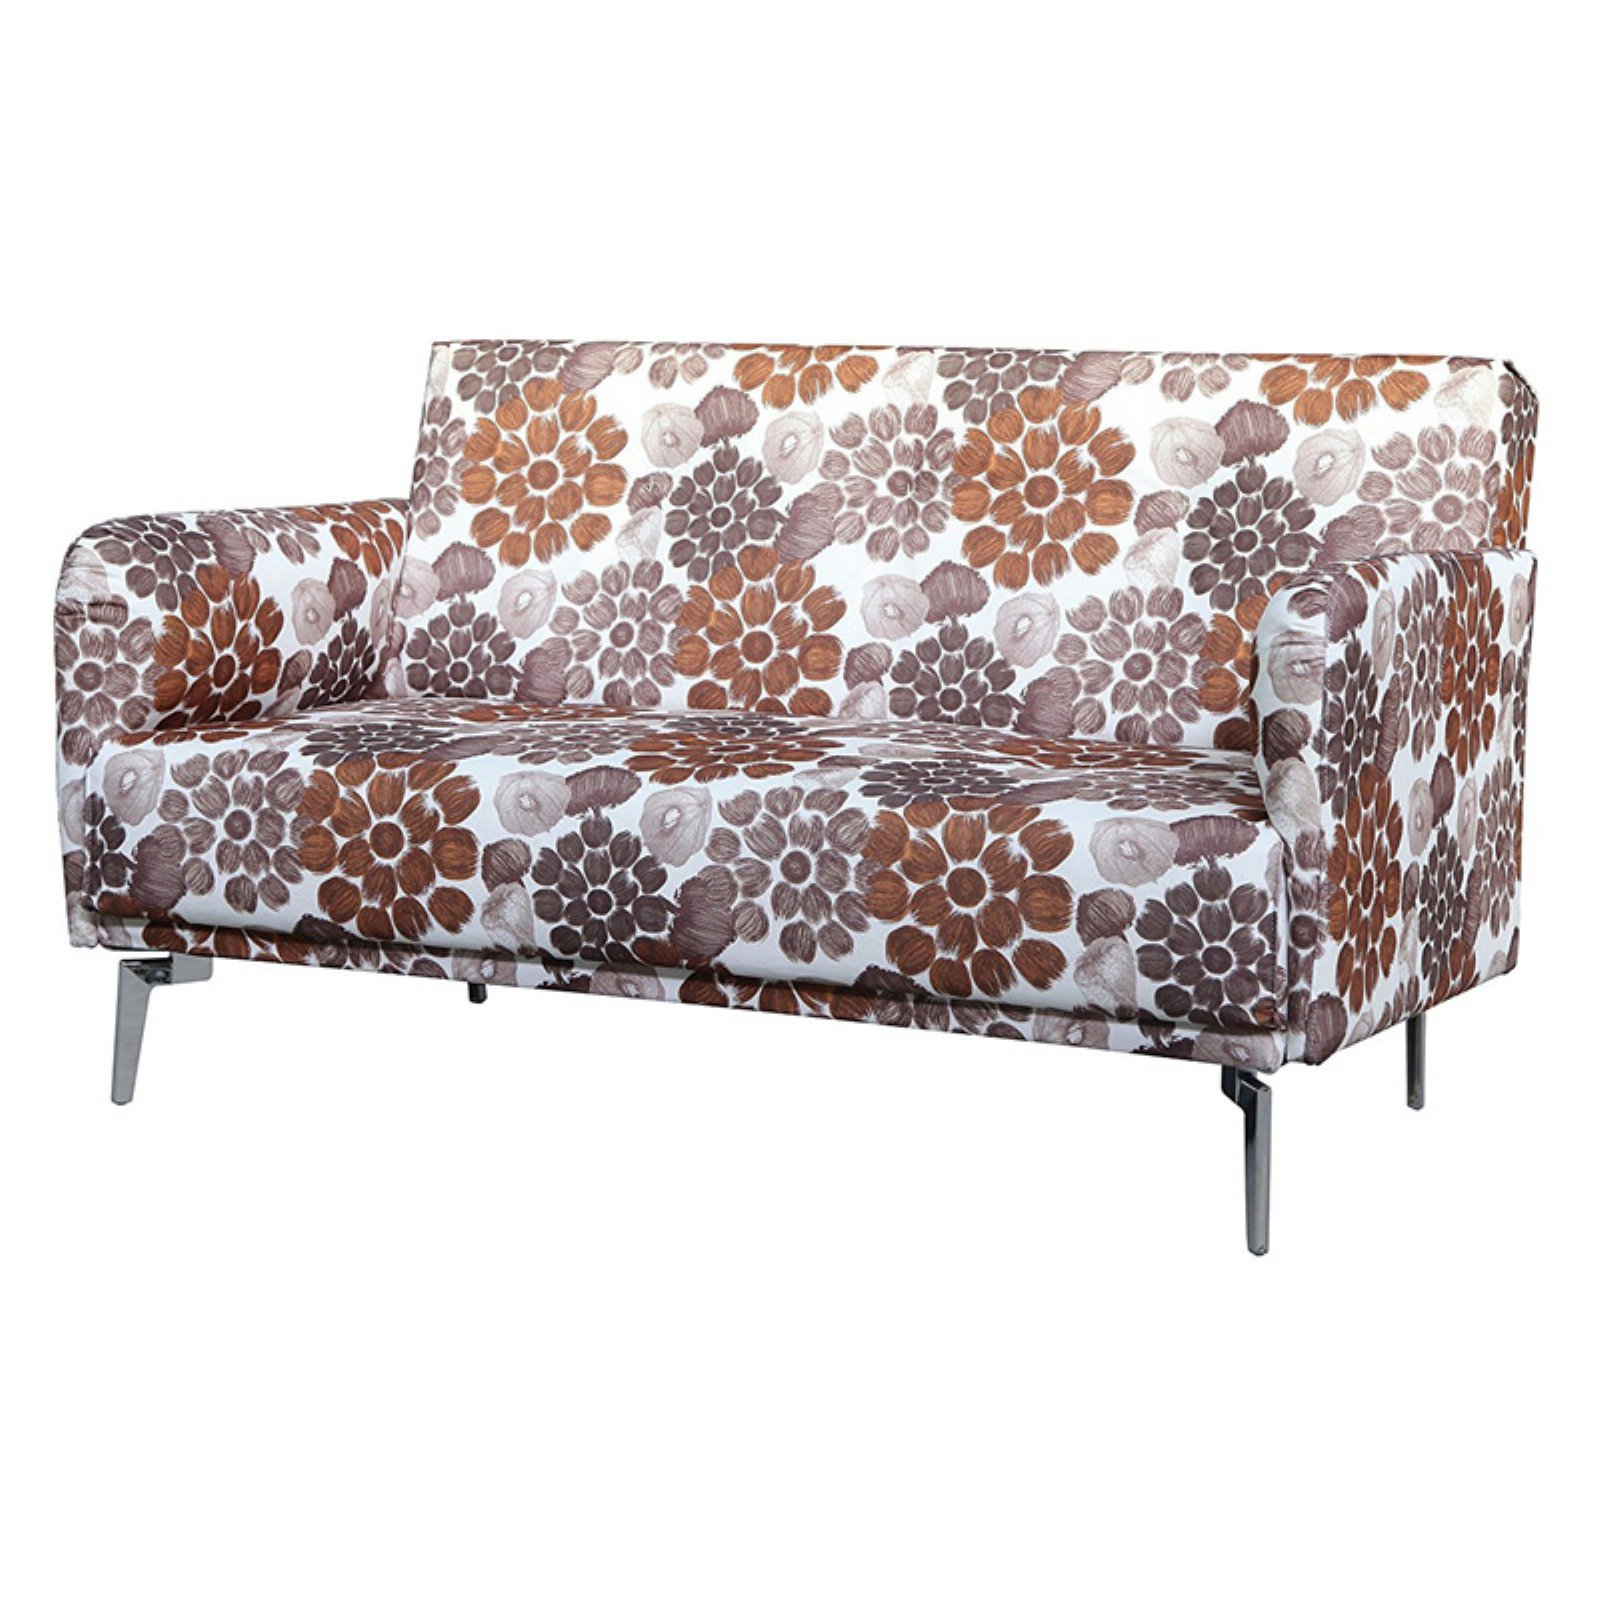 U.S. Pride Furniture Emma Flower Print Loveseat